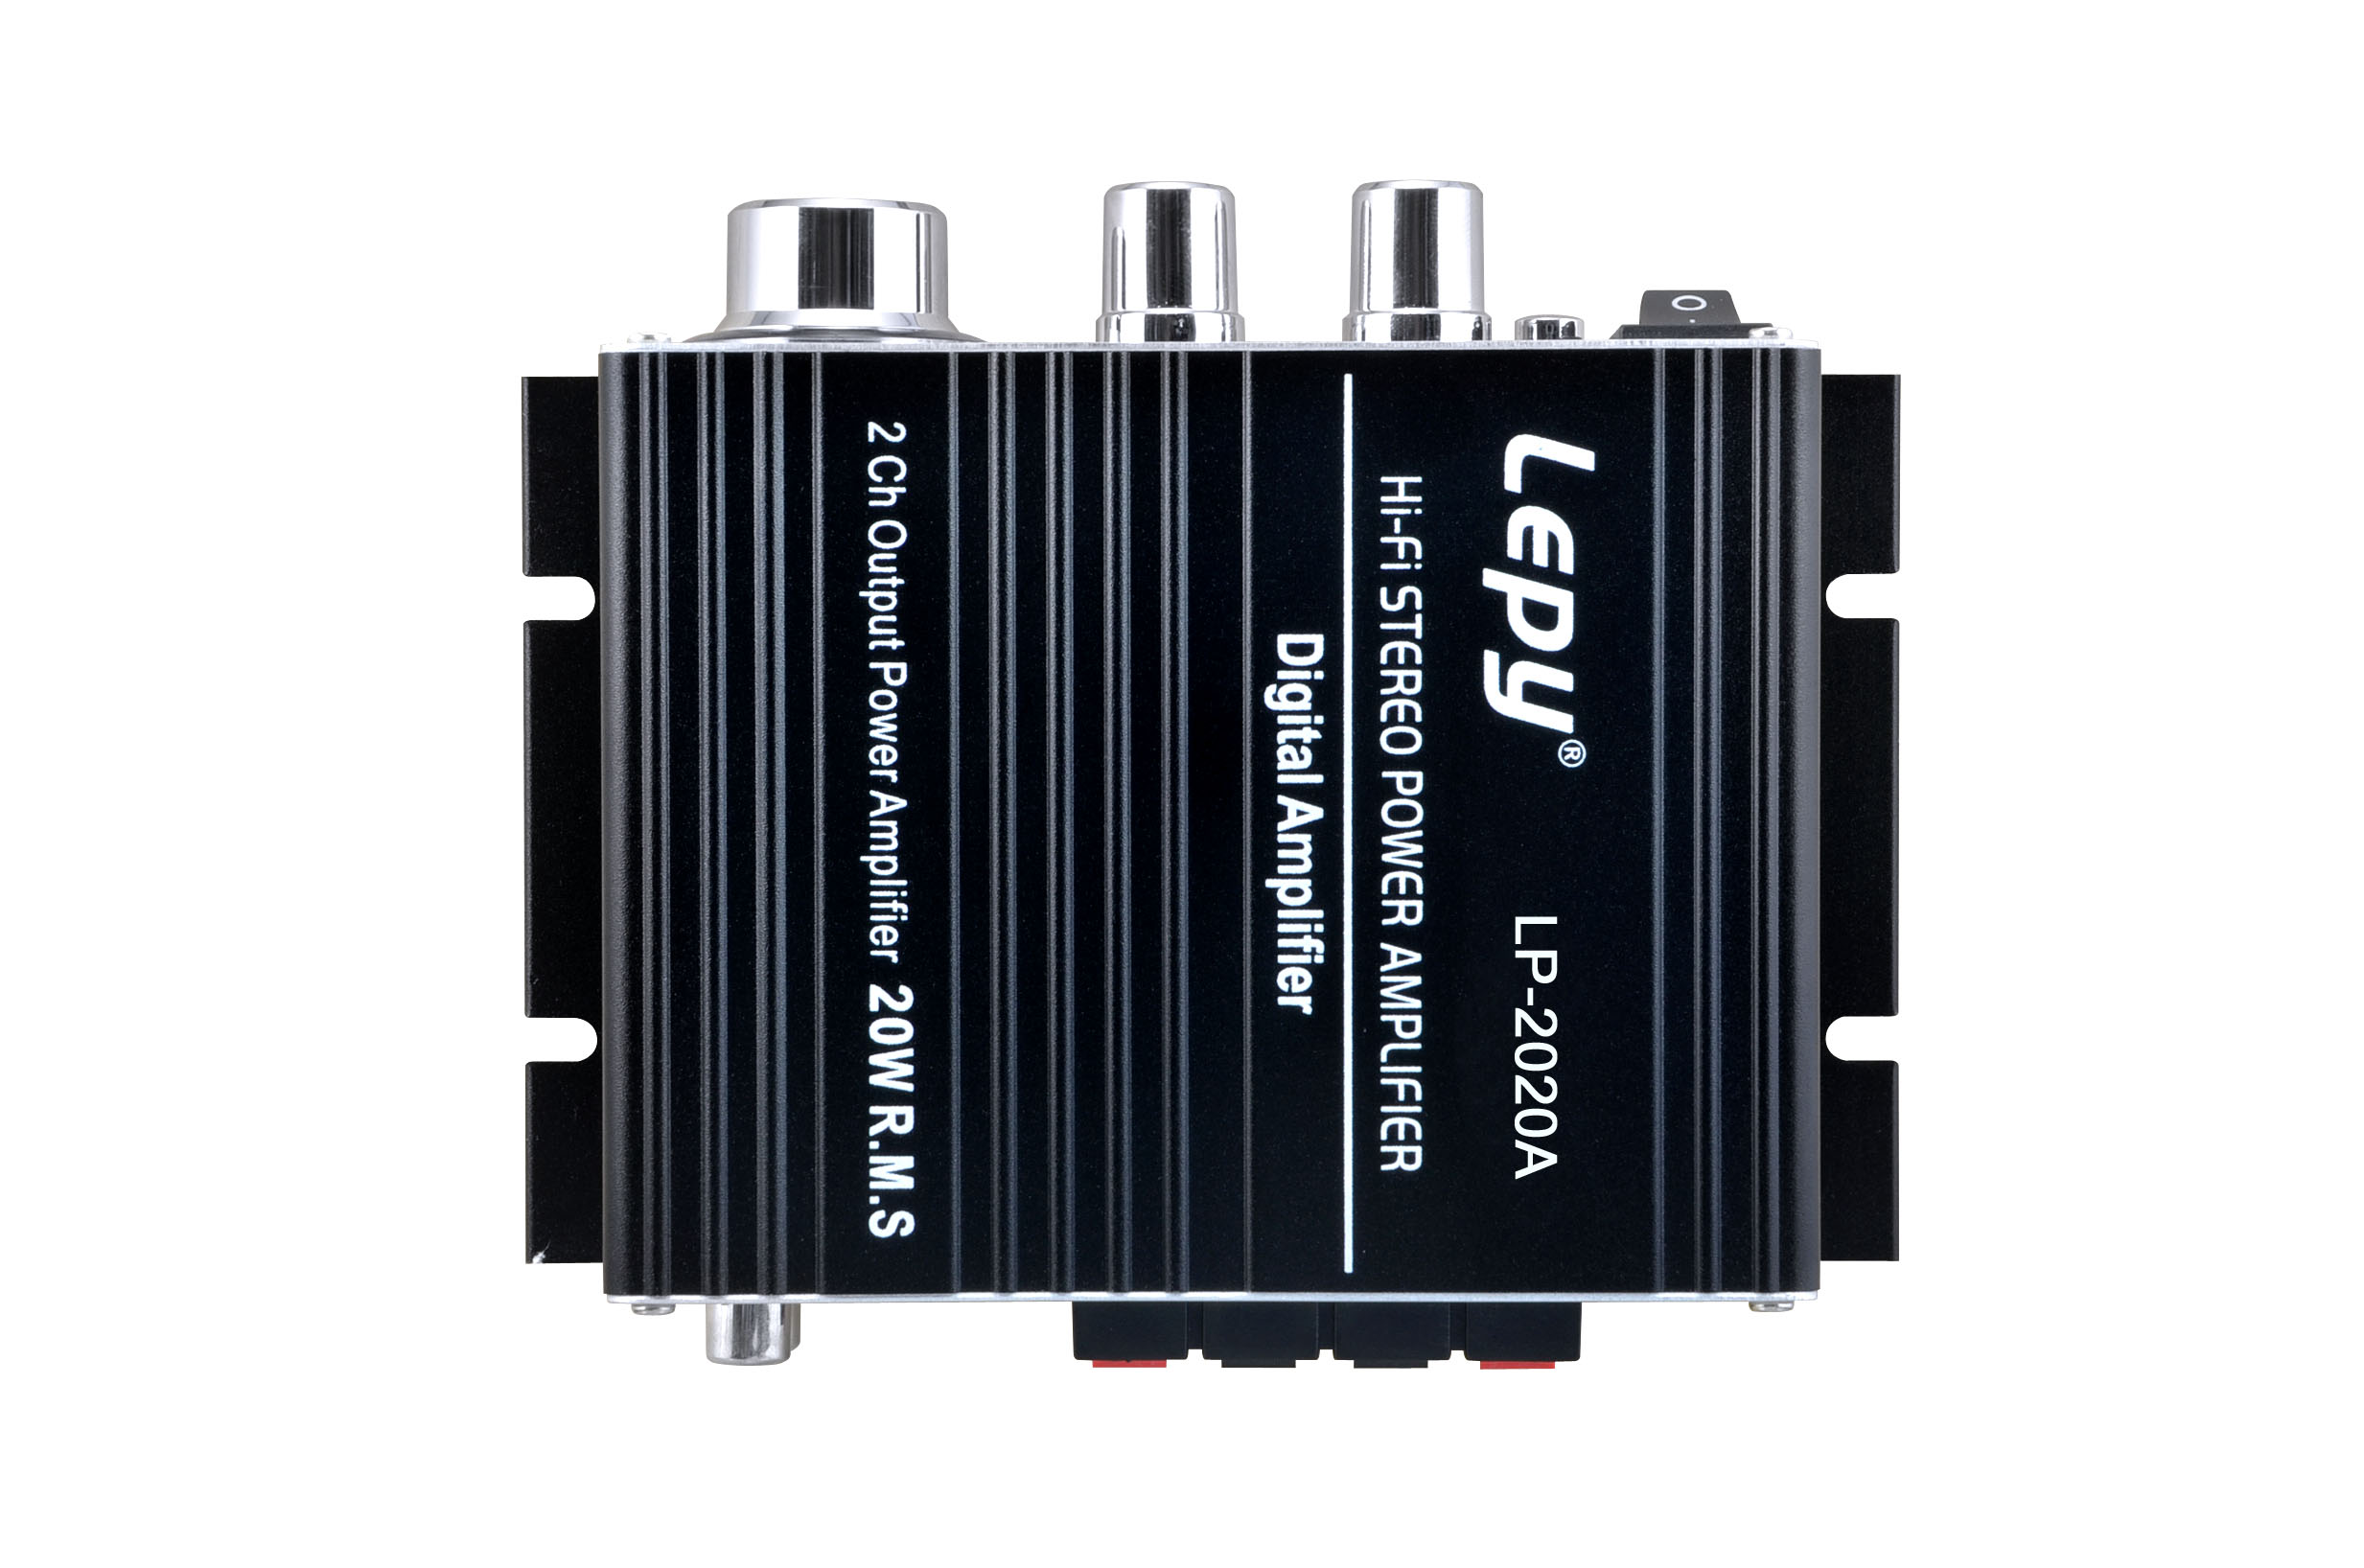 Lp 2020a Hifi D Class Digital Small Computer Dvd Mobile Phone Mini 24v6a Low Power Consumption Regulated Supply Circuit Amplifier With And Audio Cable In From Consumer Electronics